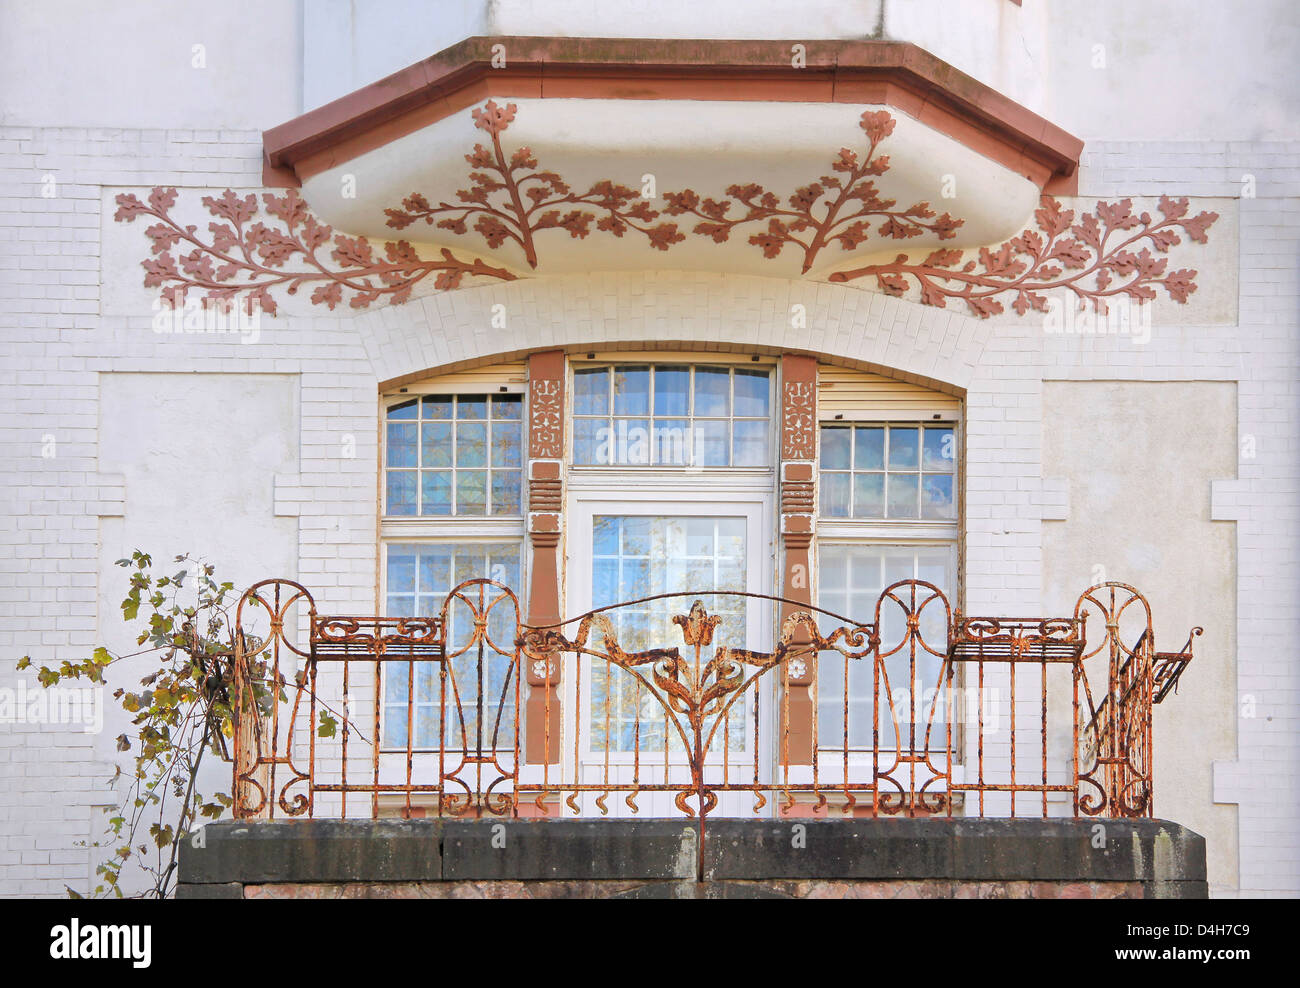 Art Nouveau style house in residential area in Wiesbaden, Hesse, Germany - Stock Image